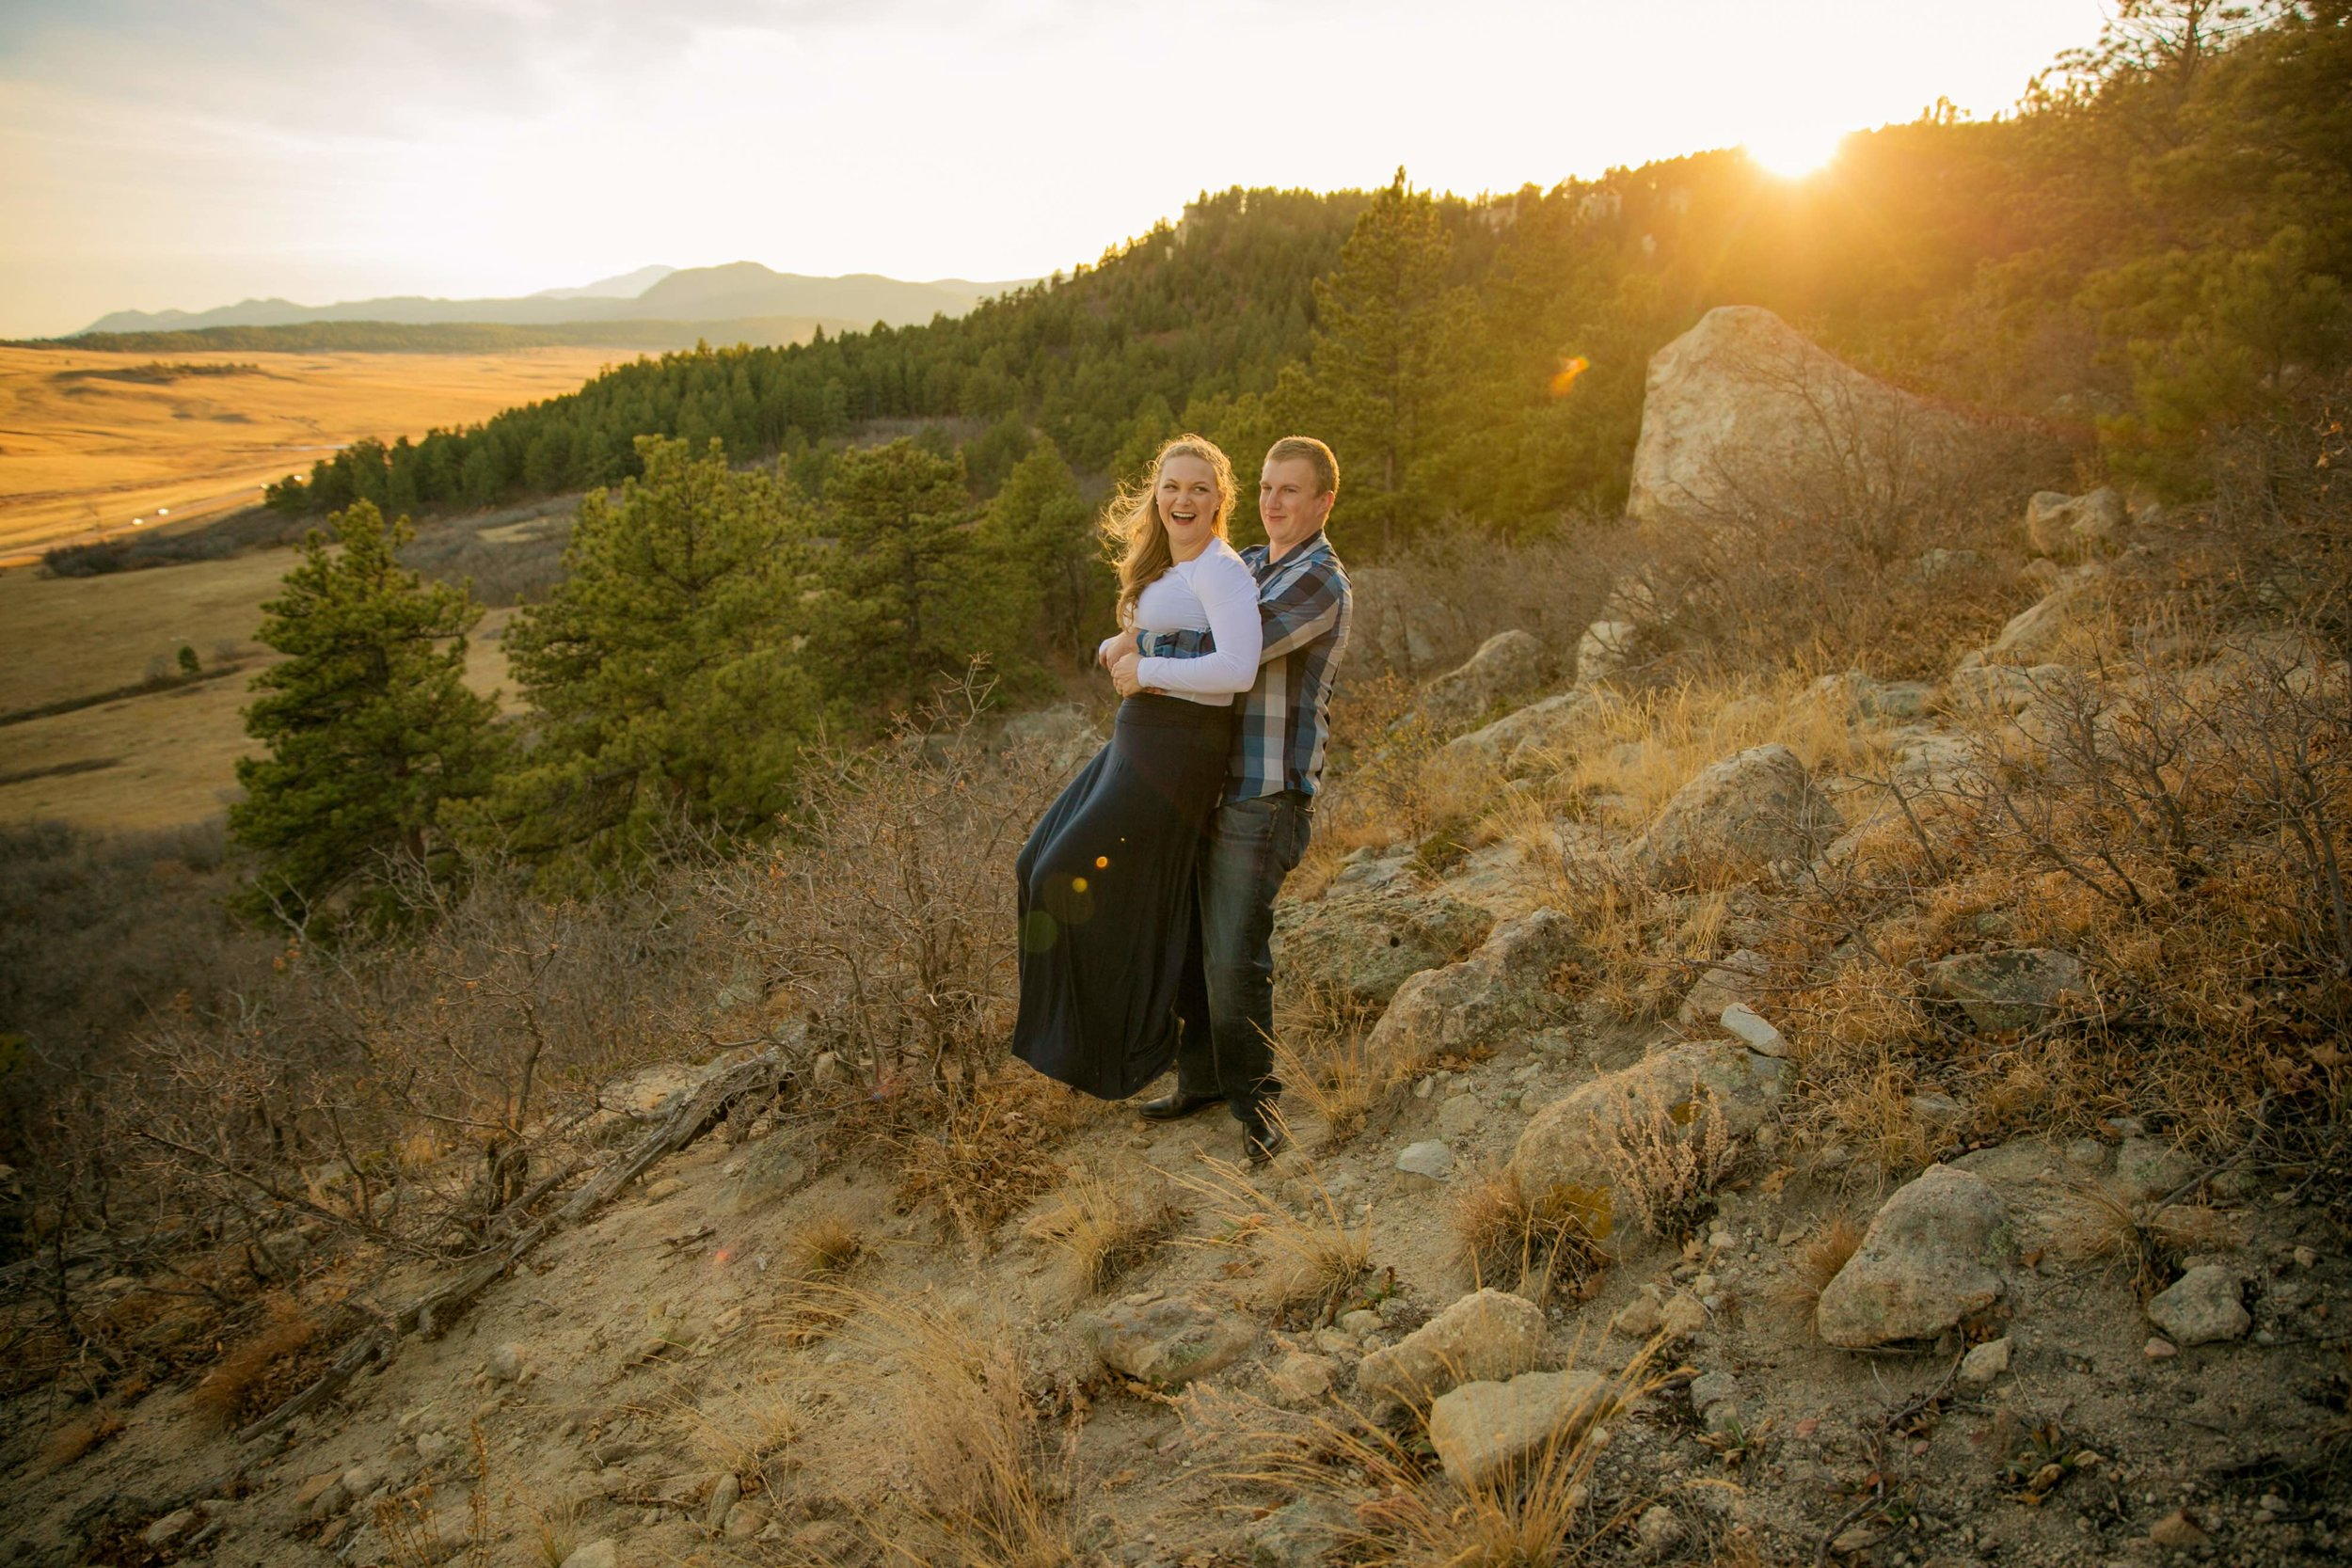 _coloradoweddingphotographer_sprucemountainopenspace_www.kisaconrad.com_20171113-607A8571.jpeg